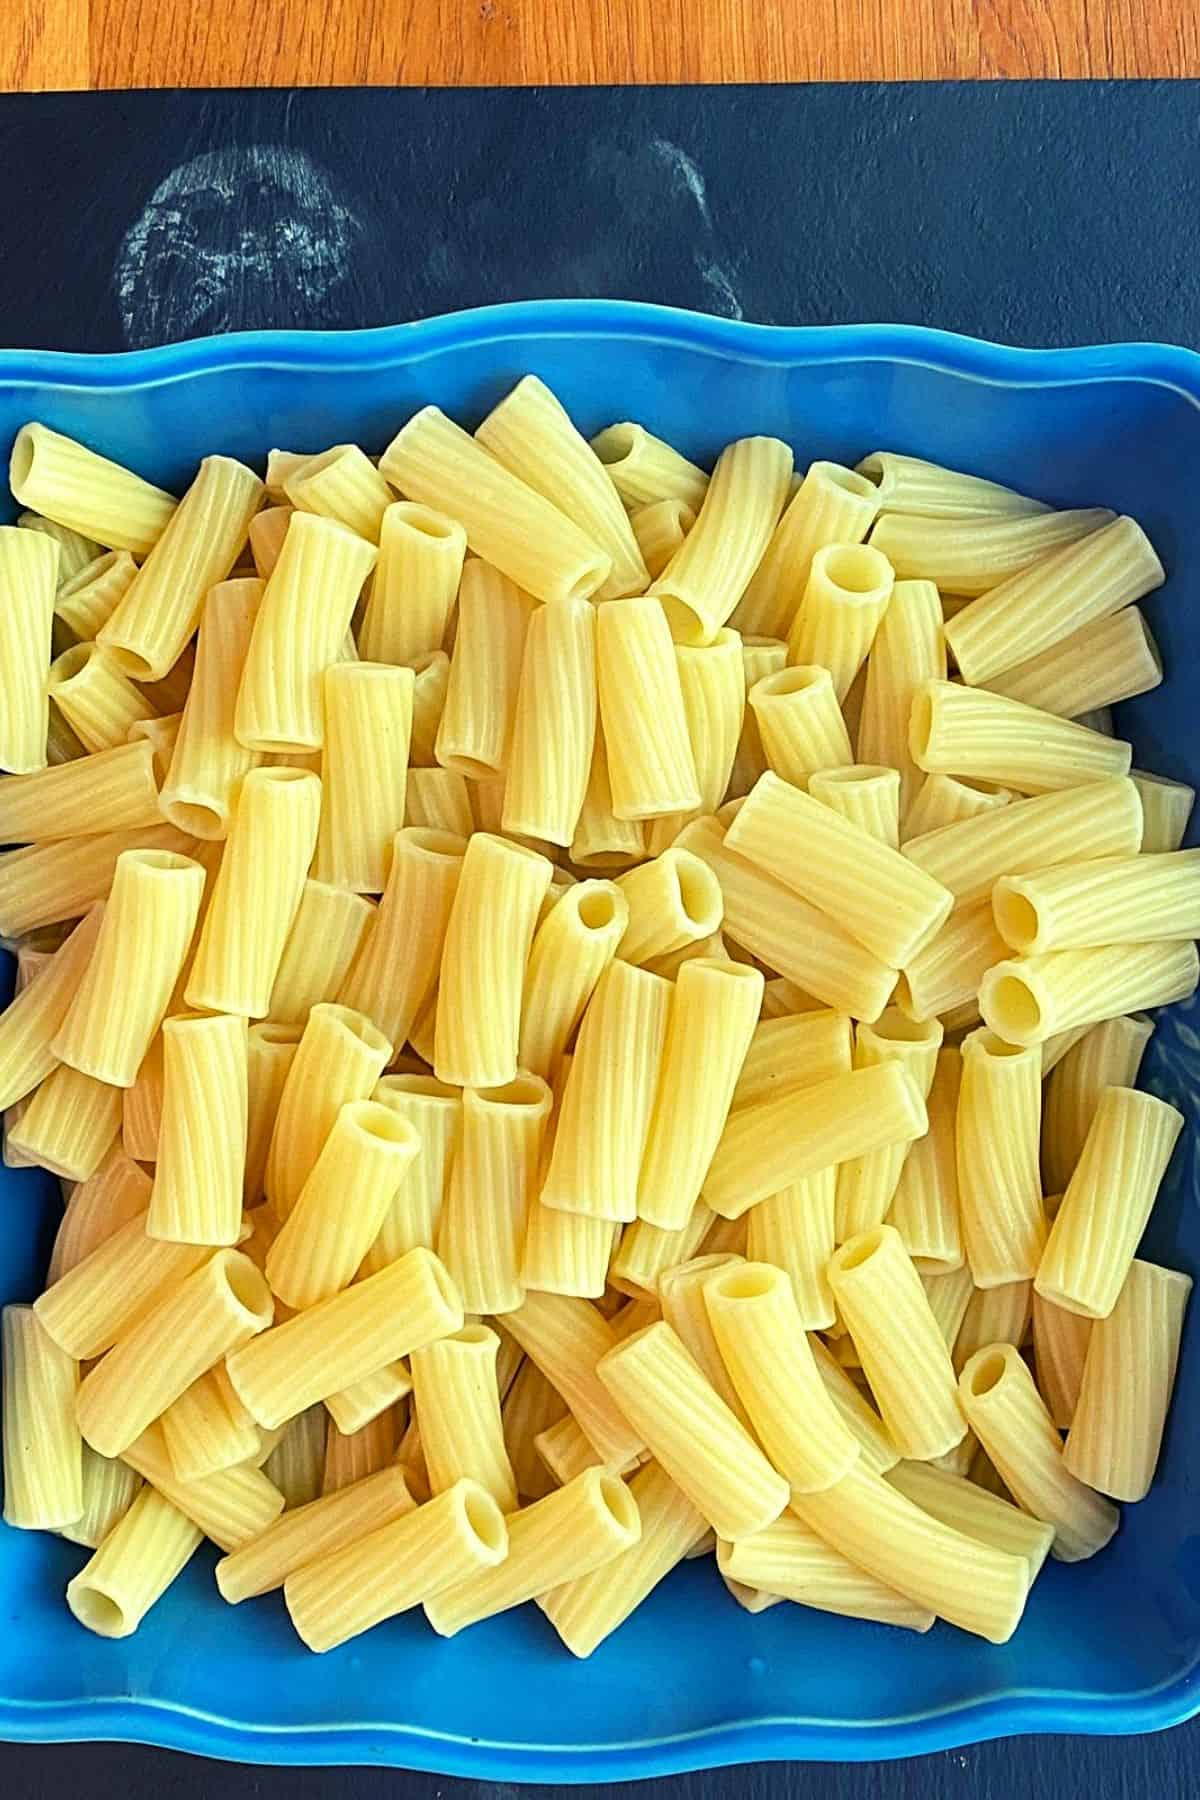 A close view of pasta noodles after being cooked